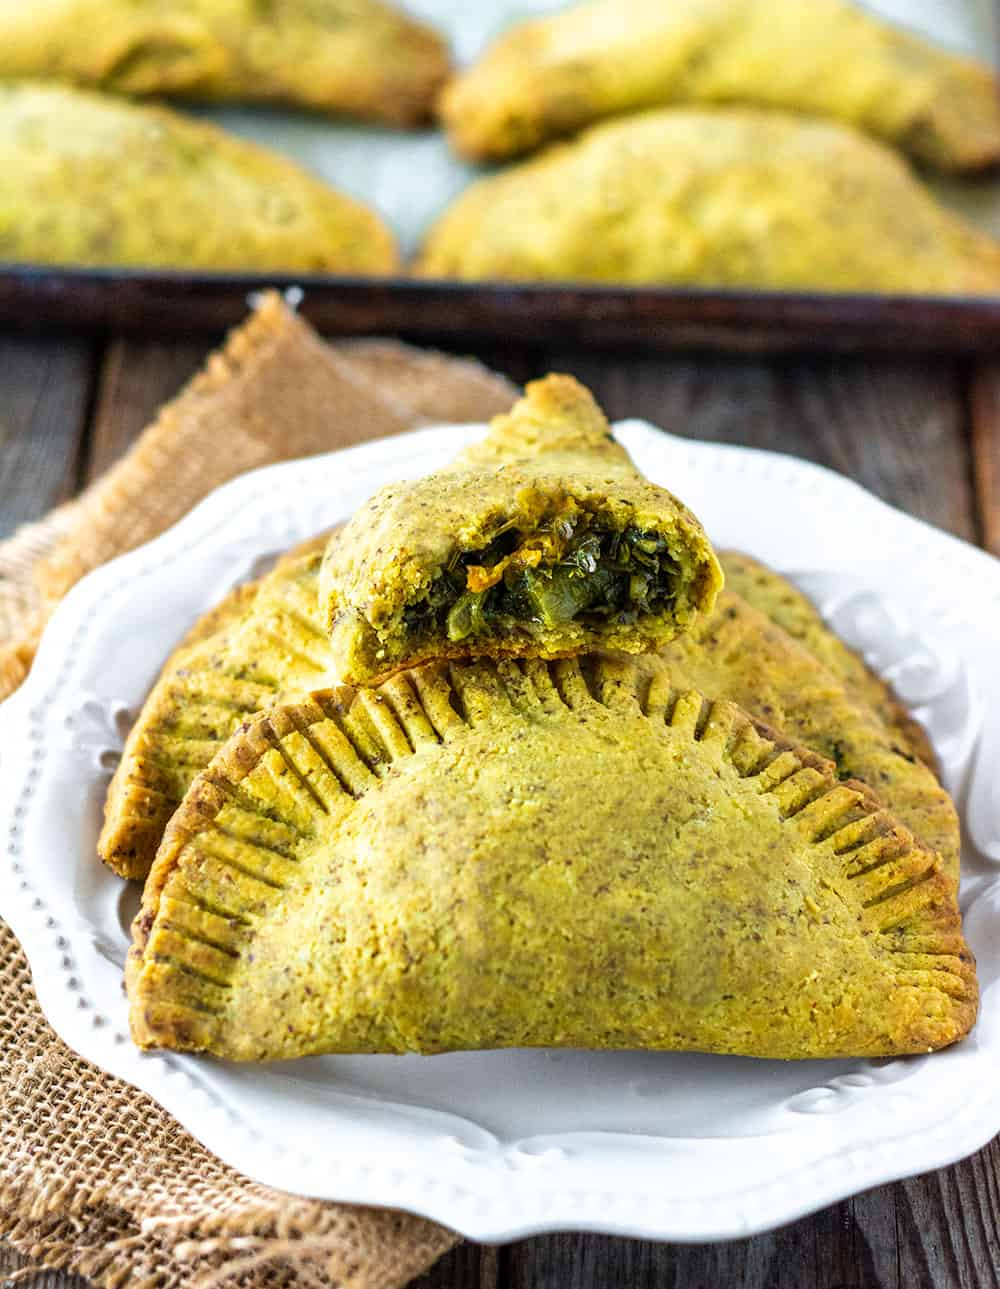 tender and flaky jamaican callaloo patty recipe that is